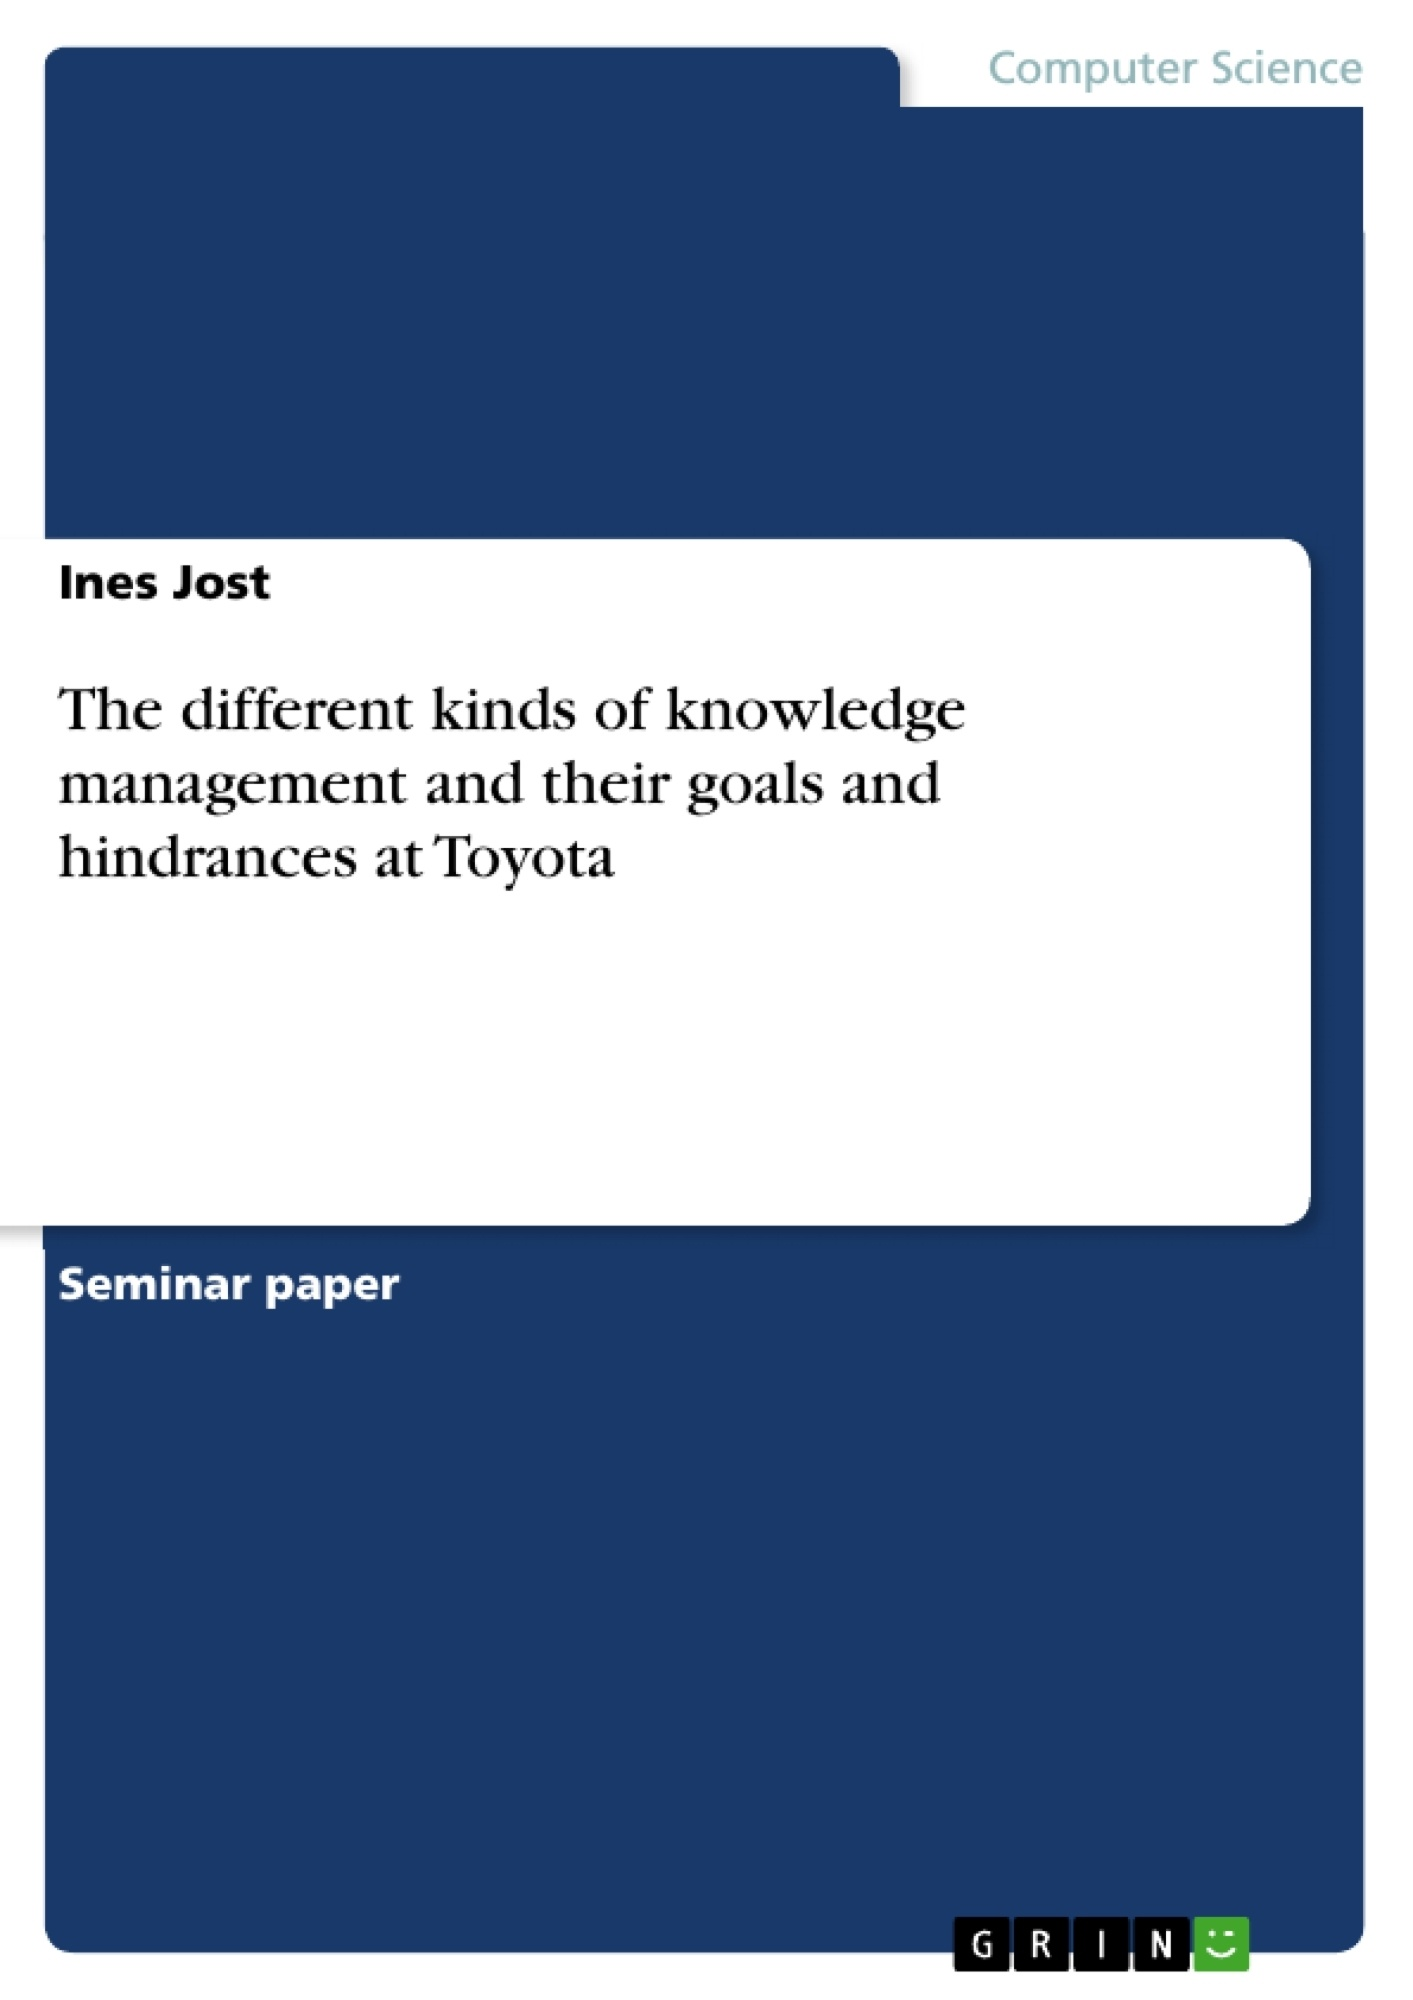 Title: The different kinds of knowledge management and their goals and hindrances at Toyota